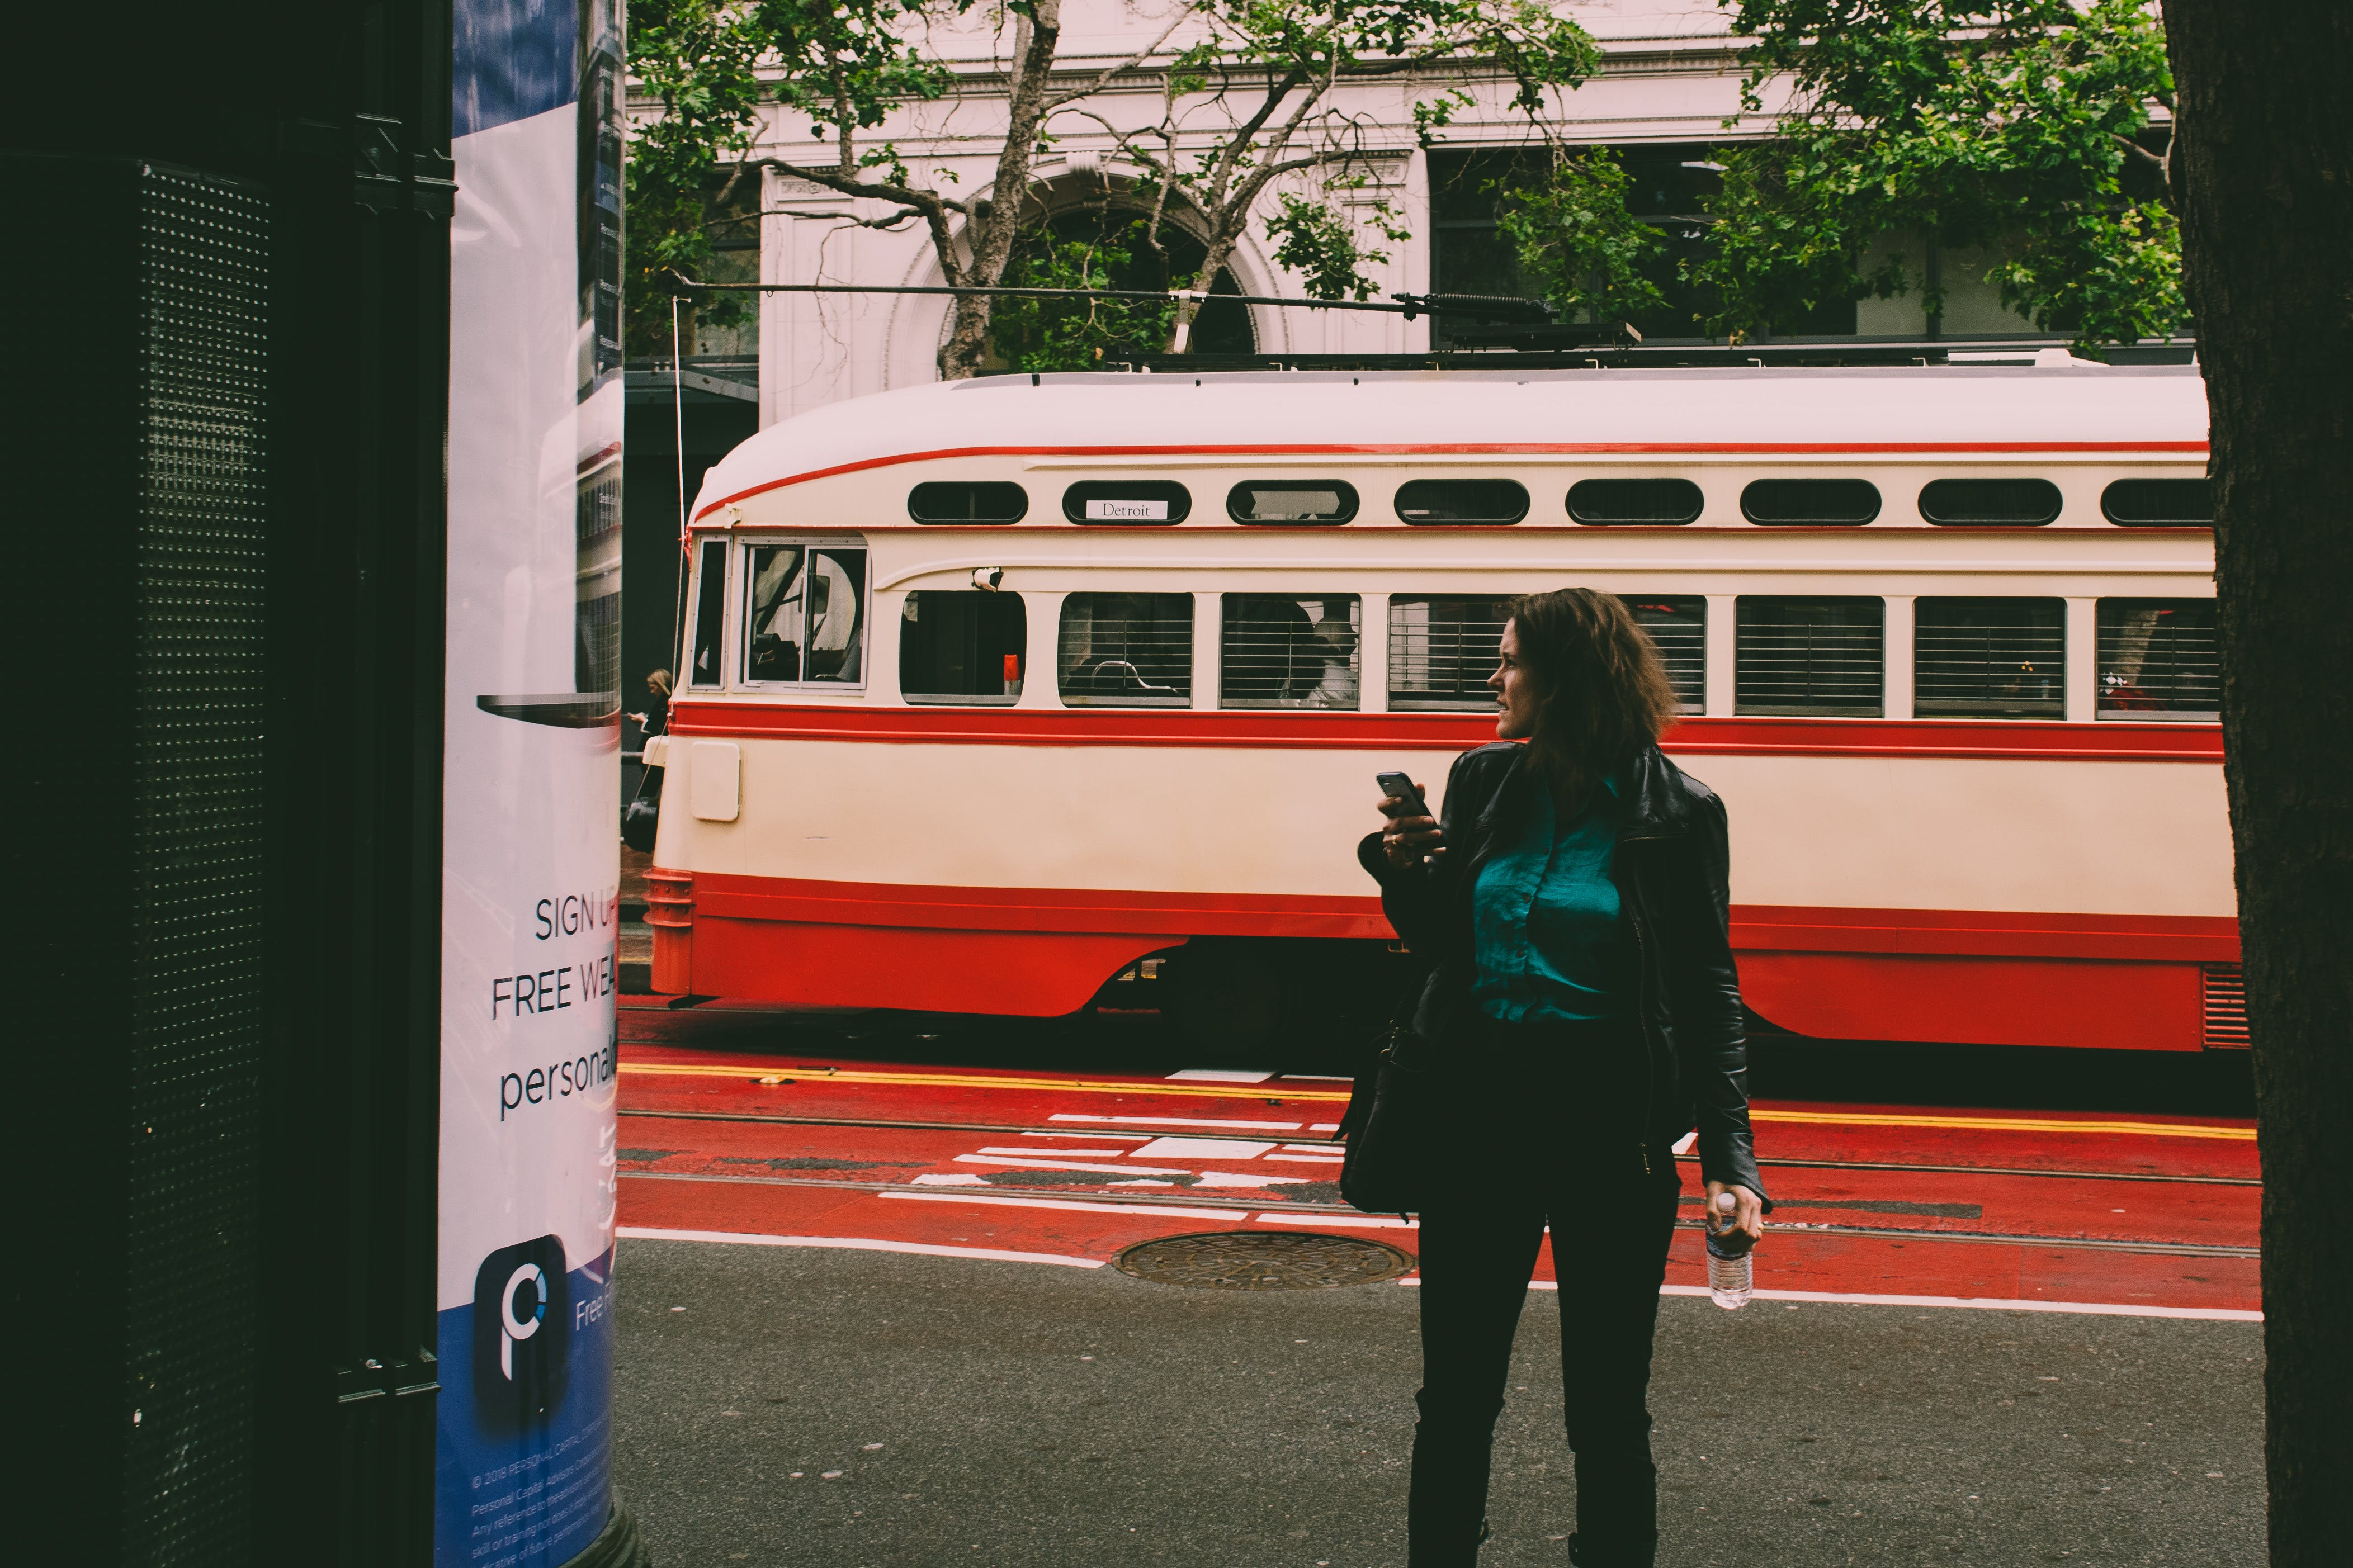 Woman Wearing Black Blazer Beside White and Red Cable Cab